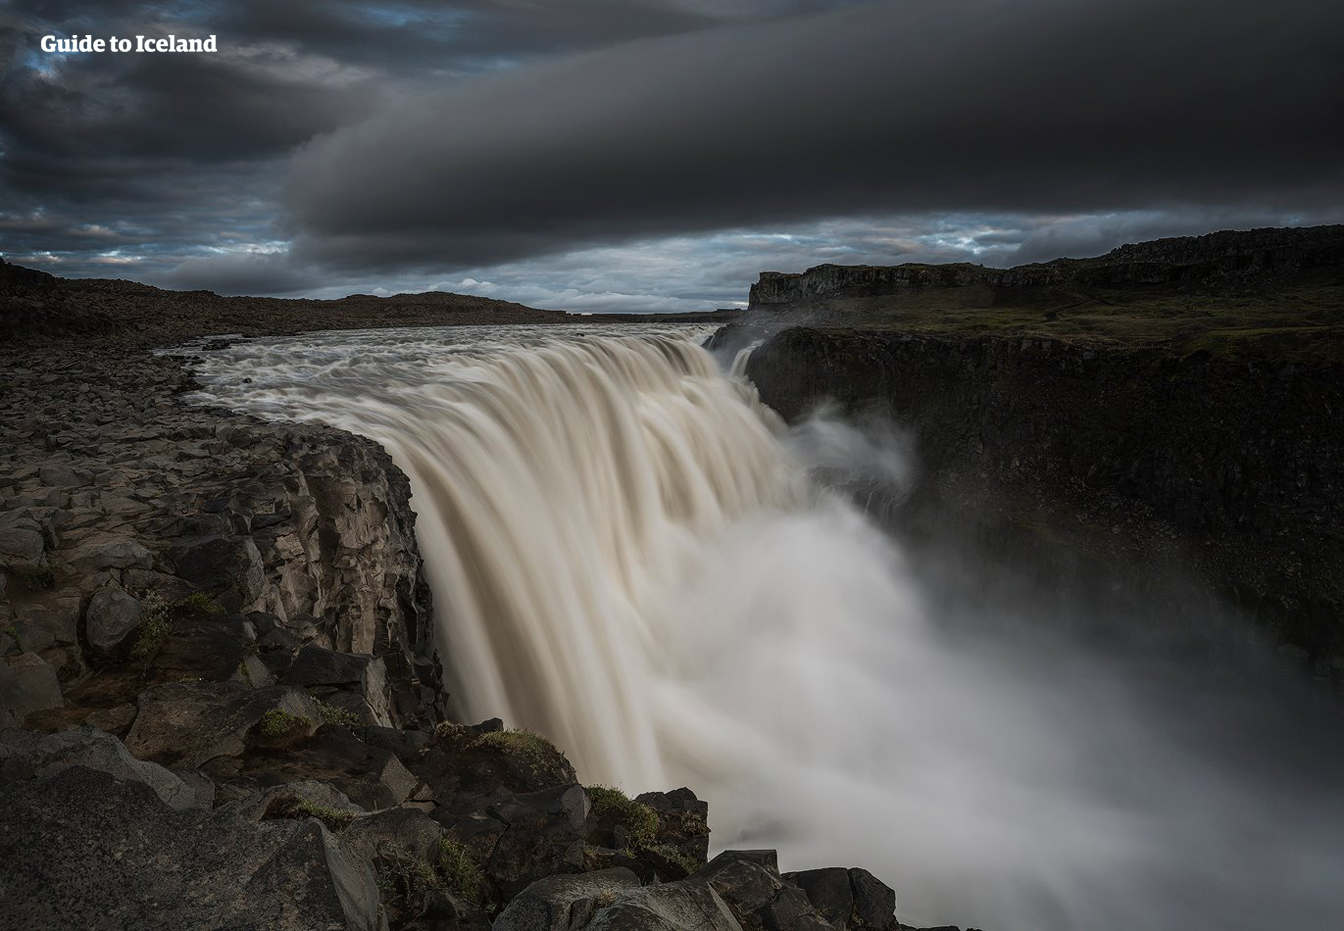 Dettifoss is an incredibly powerful waterfall in the North of Iceland